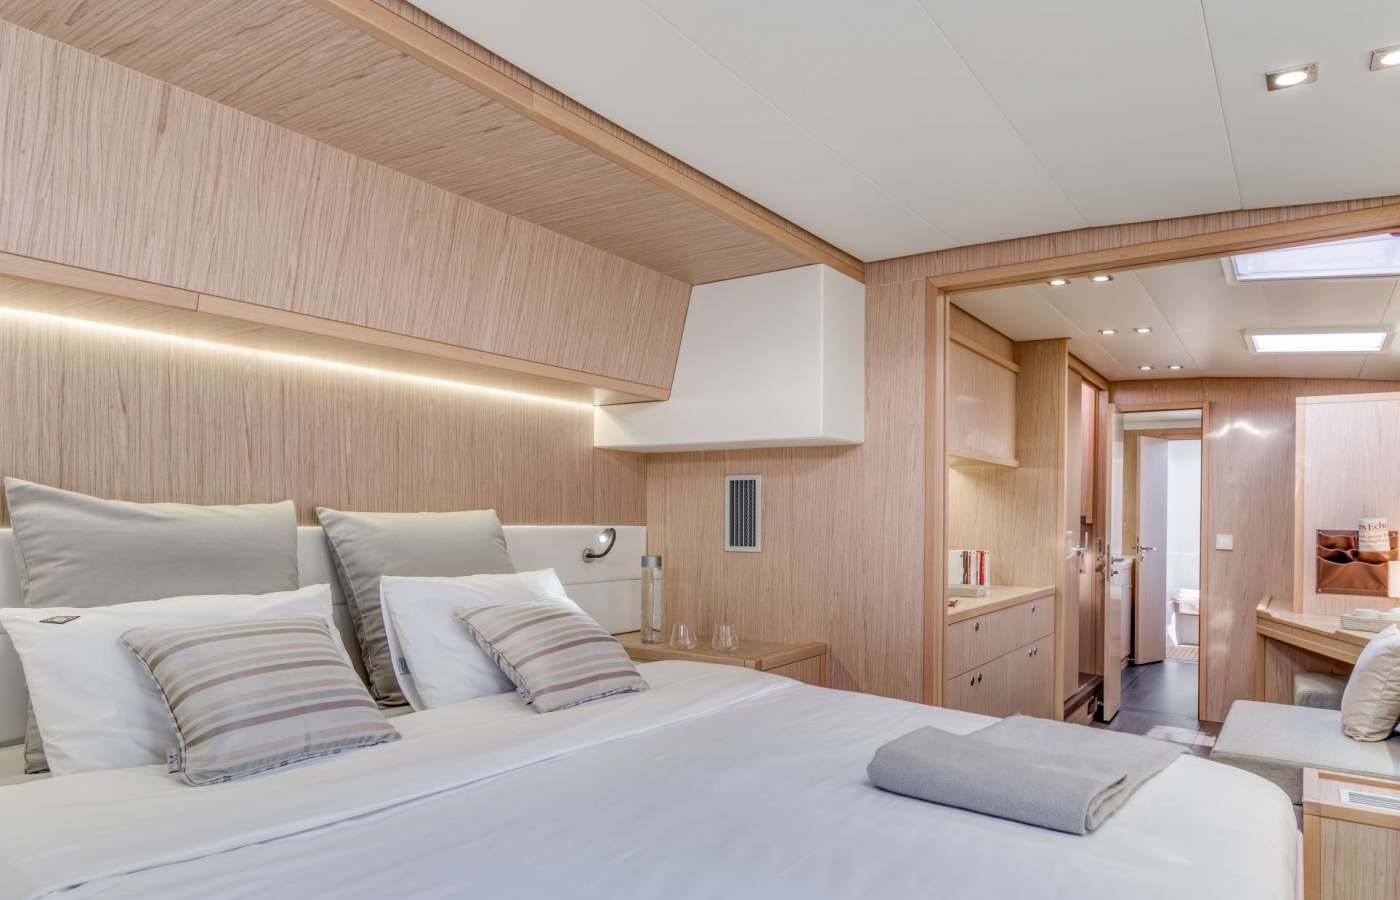 Double bedroom with bright lighting and storage space